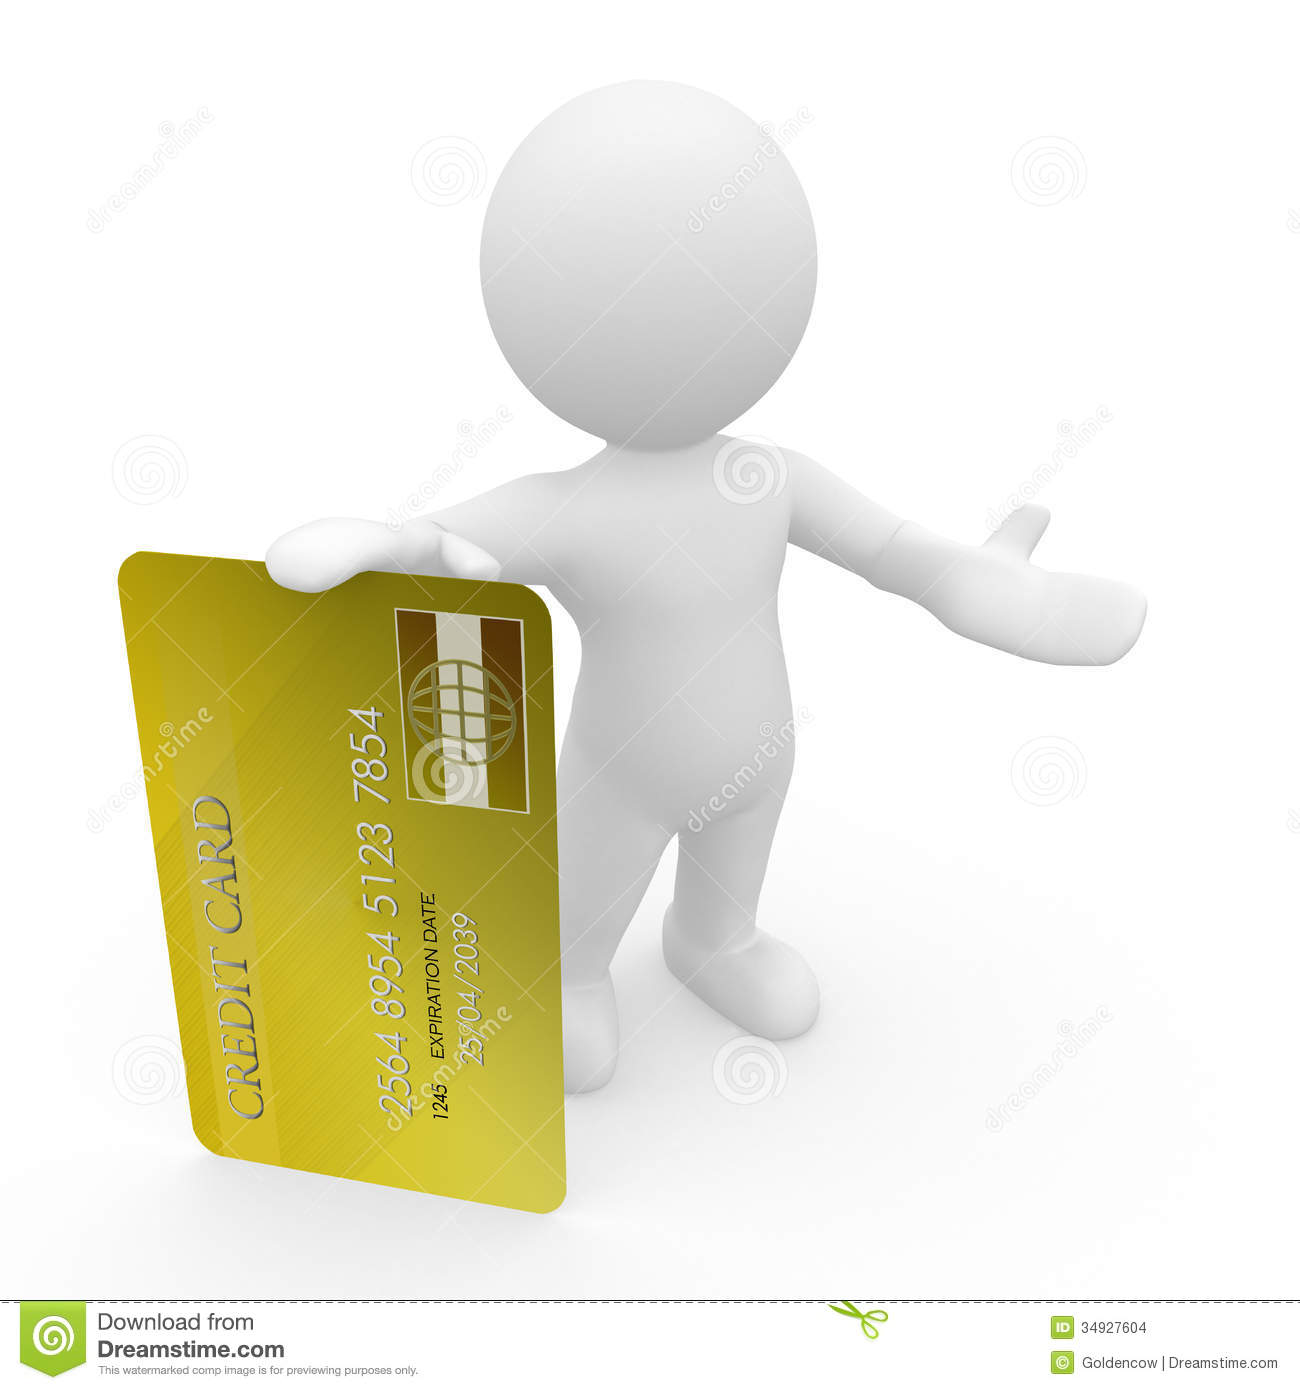 Mr. Smart Guy with credit card